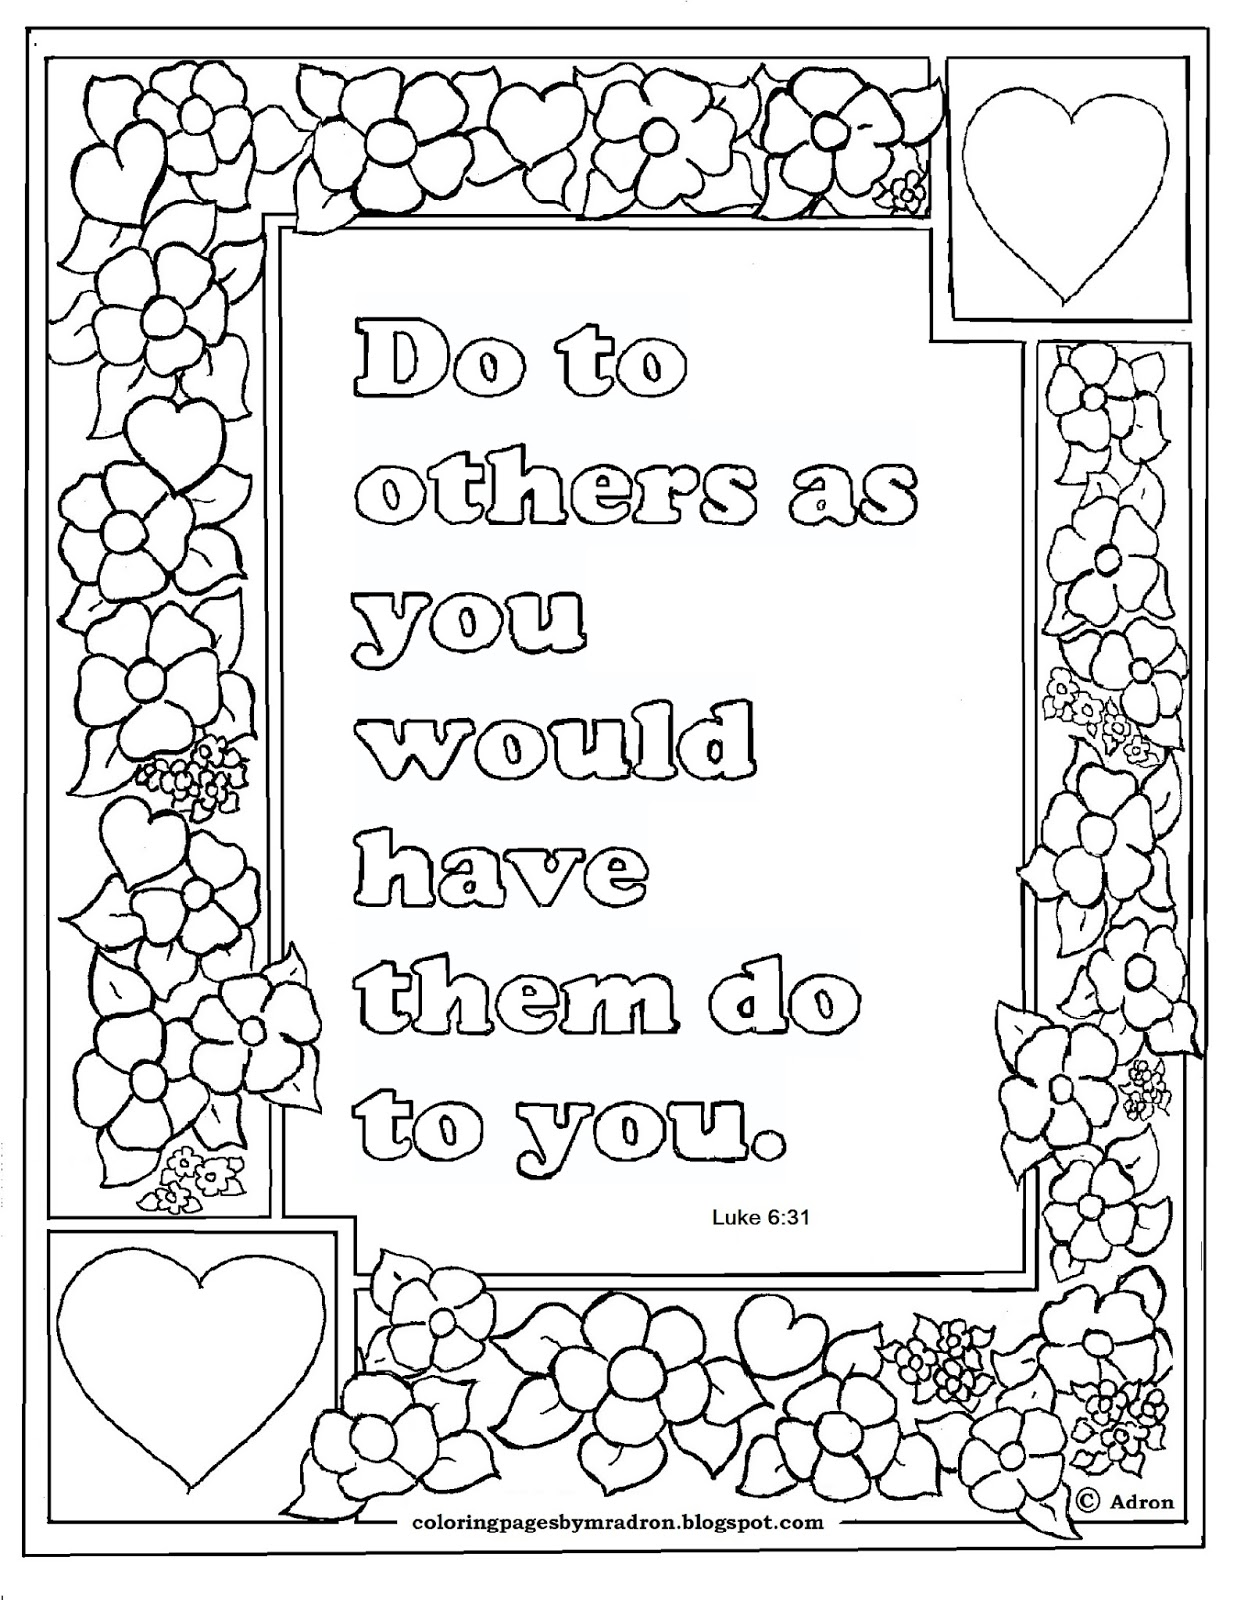 Coloring Pages For Kids By Mr Adron Luke 6 31 Print And